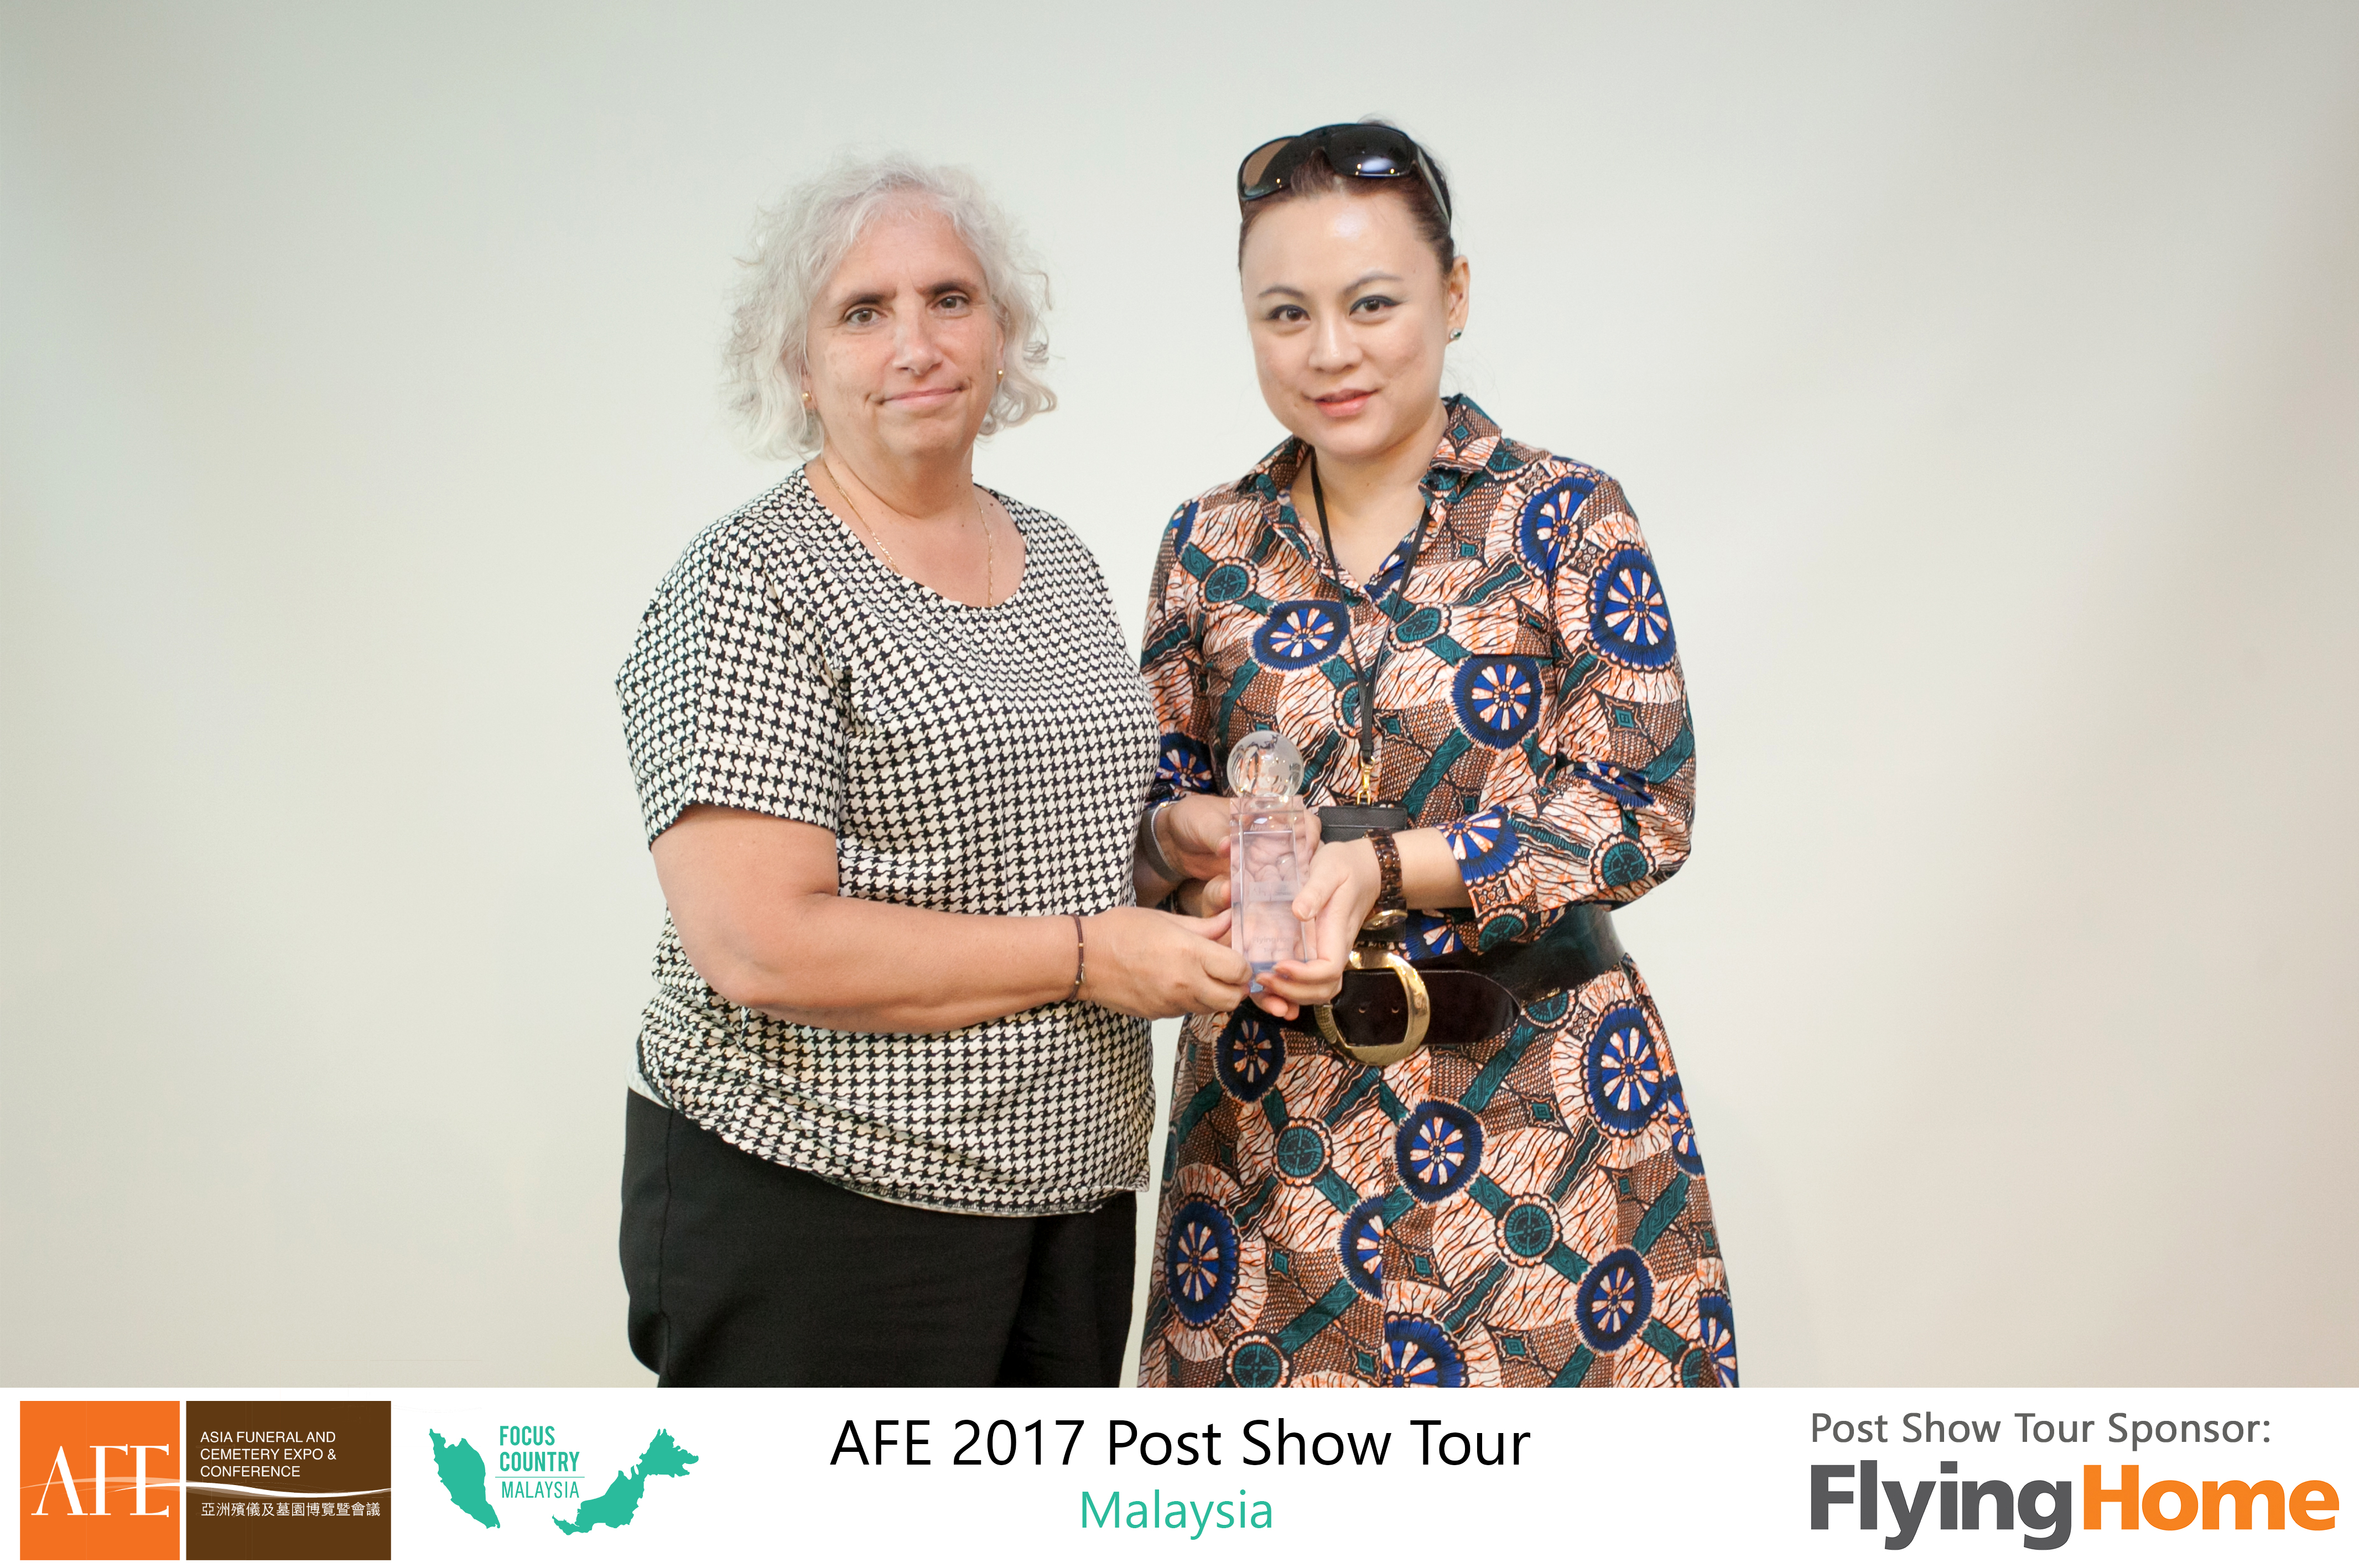 AFE Post Show Tour 2017 Day 3 -29